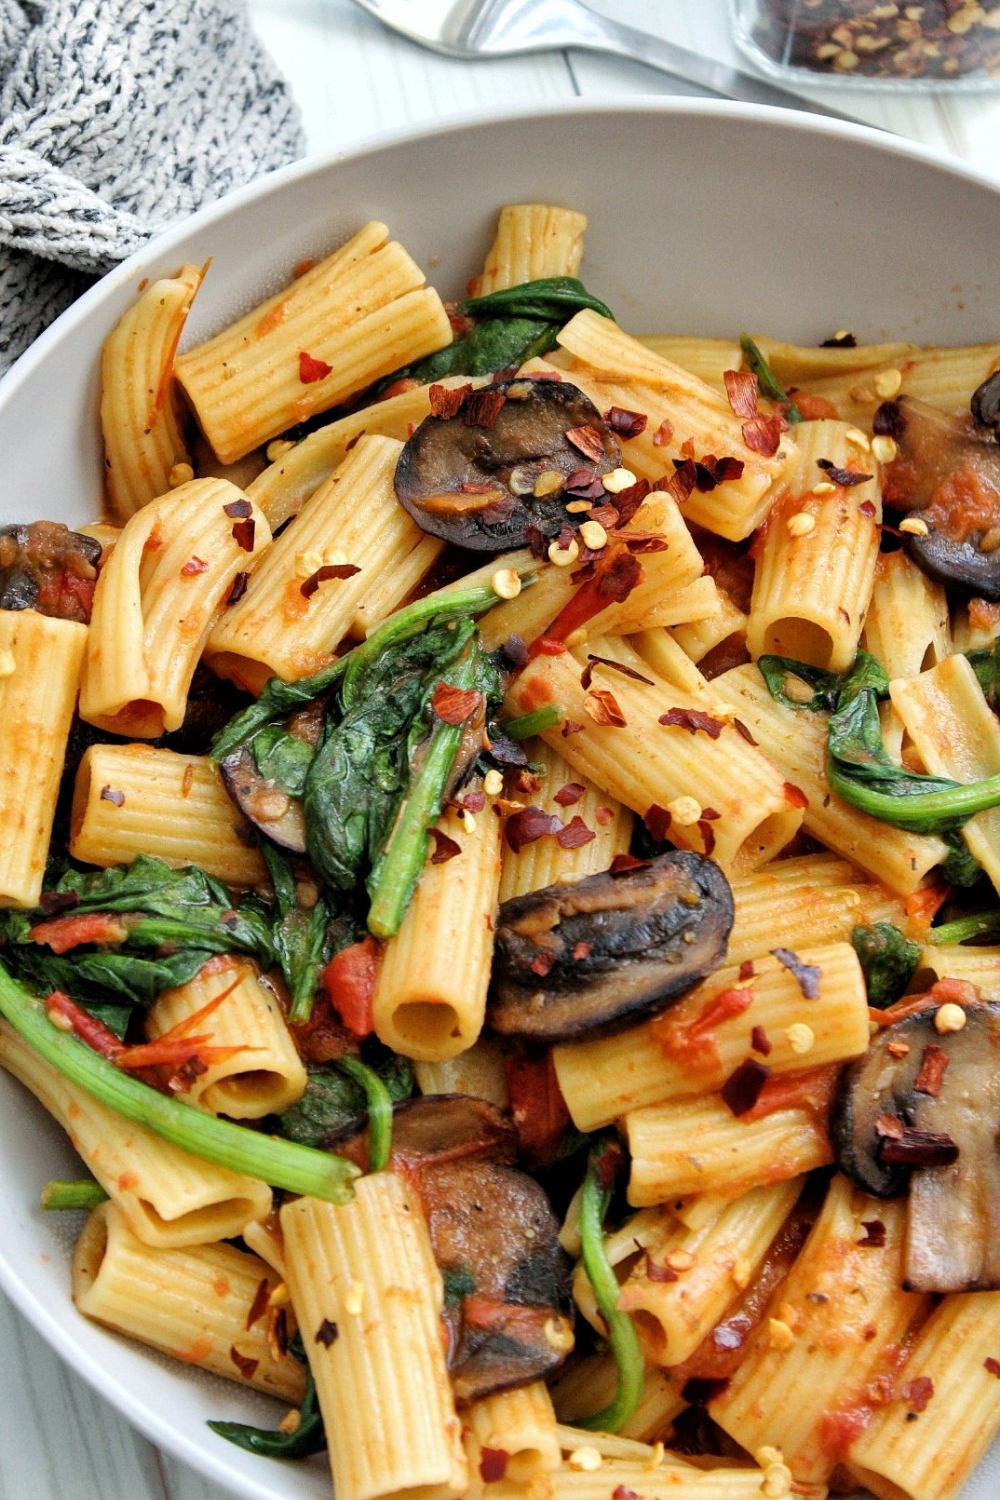 Closeup rigatoni pasta with mushrooms, spinach, and red chili flakes